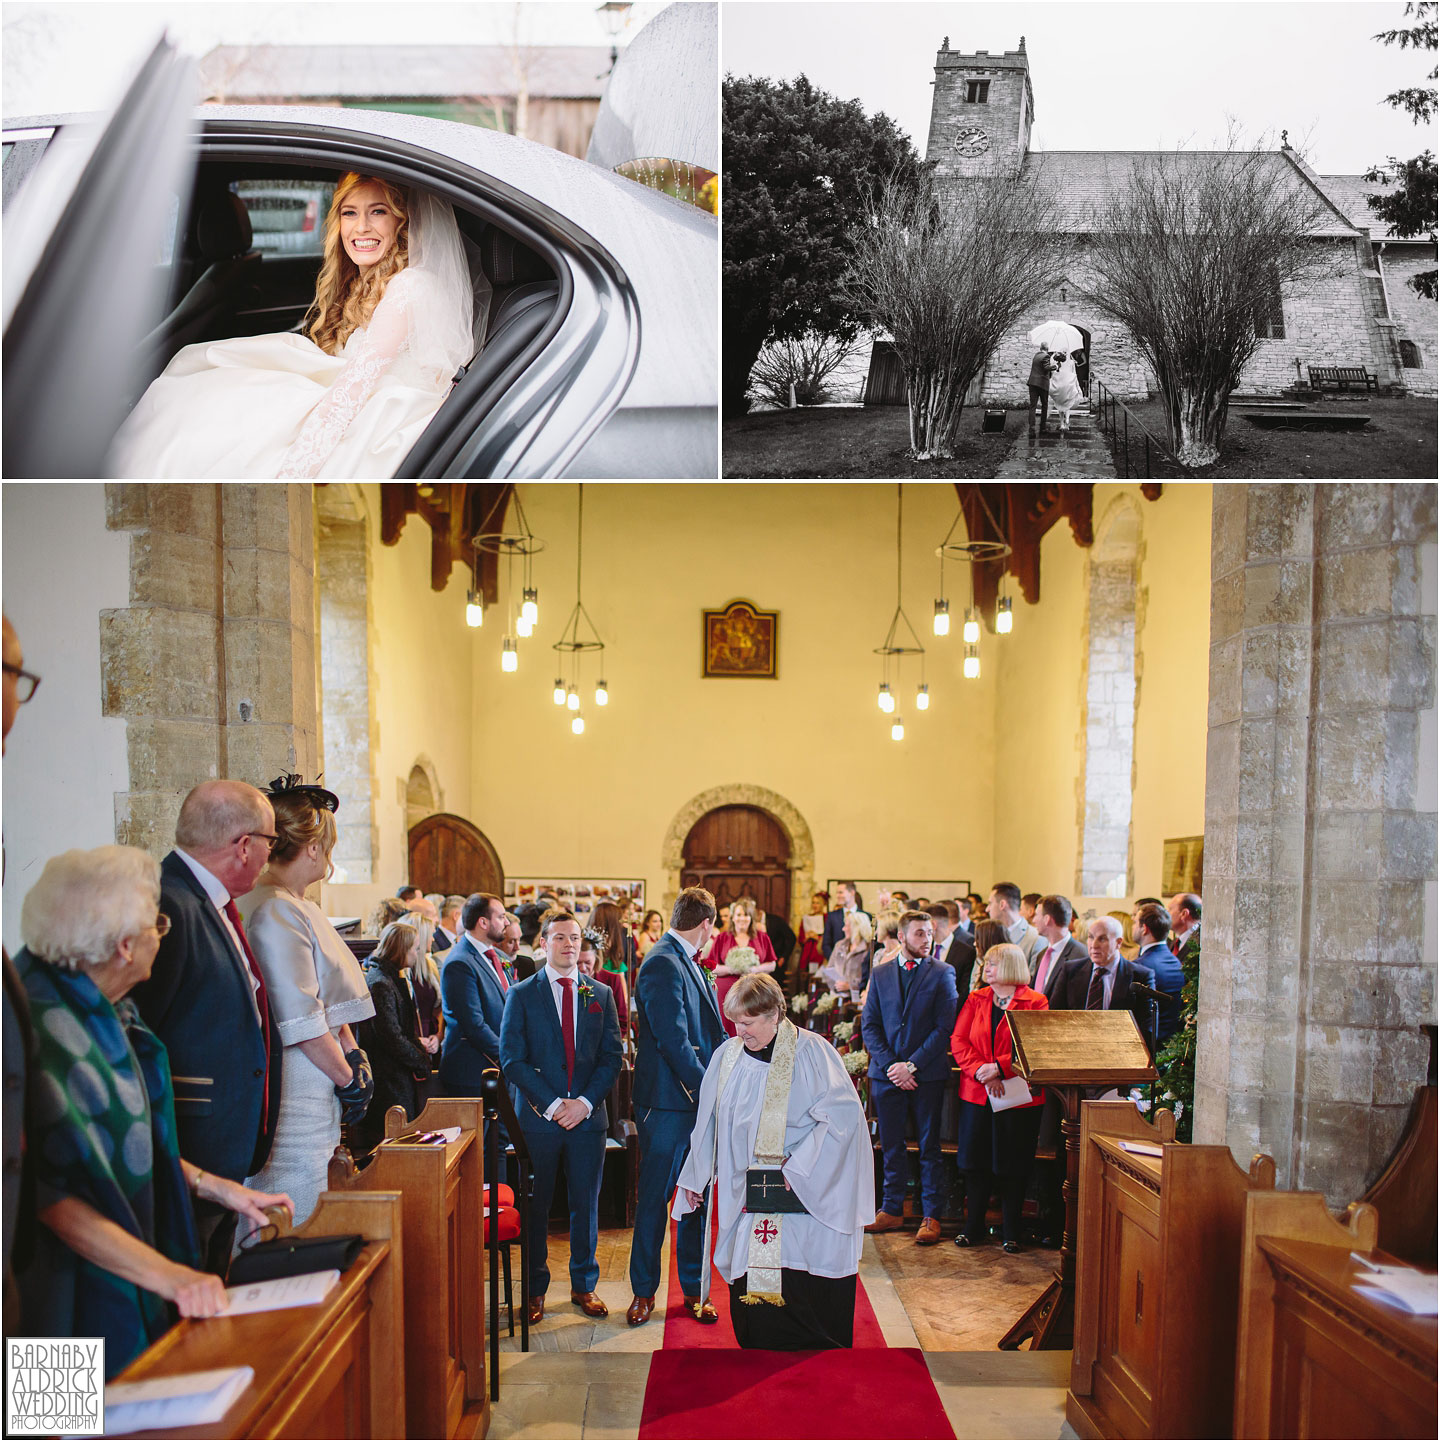 The bride's arrival at St Peter's Church in Walton near Wetherby, Priory Cottages Barn Wedding Venue Photos, Yorkshire Barn Venue Photos